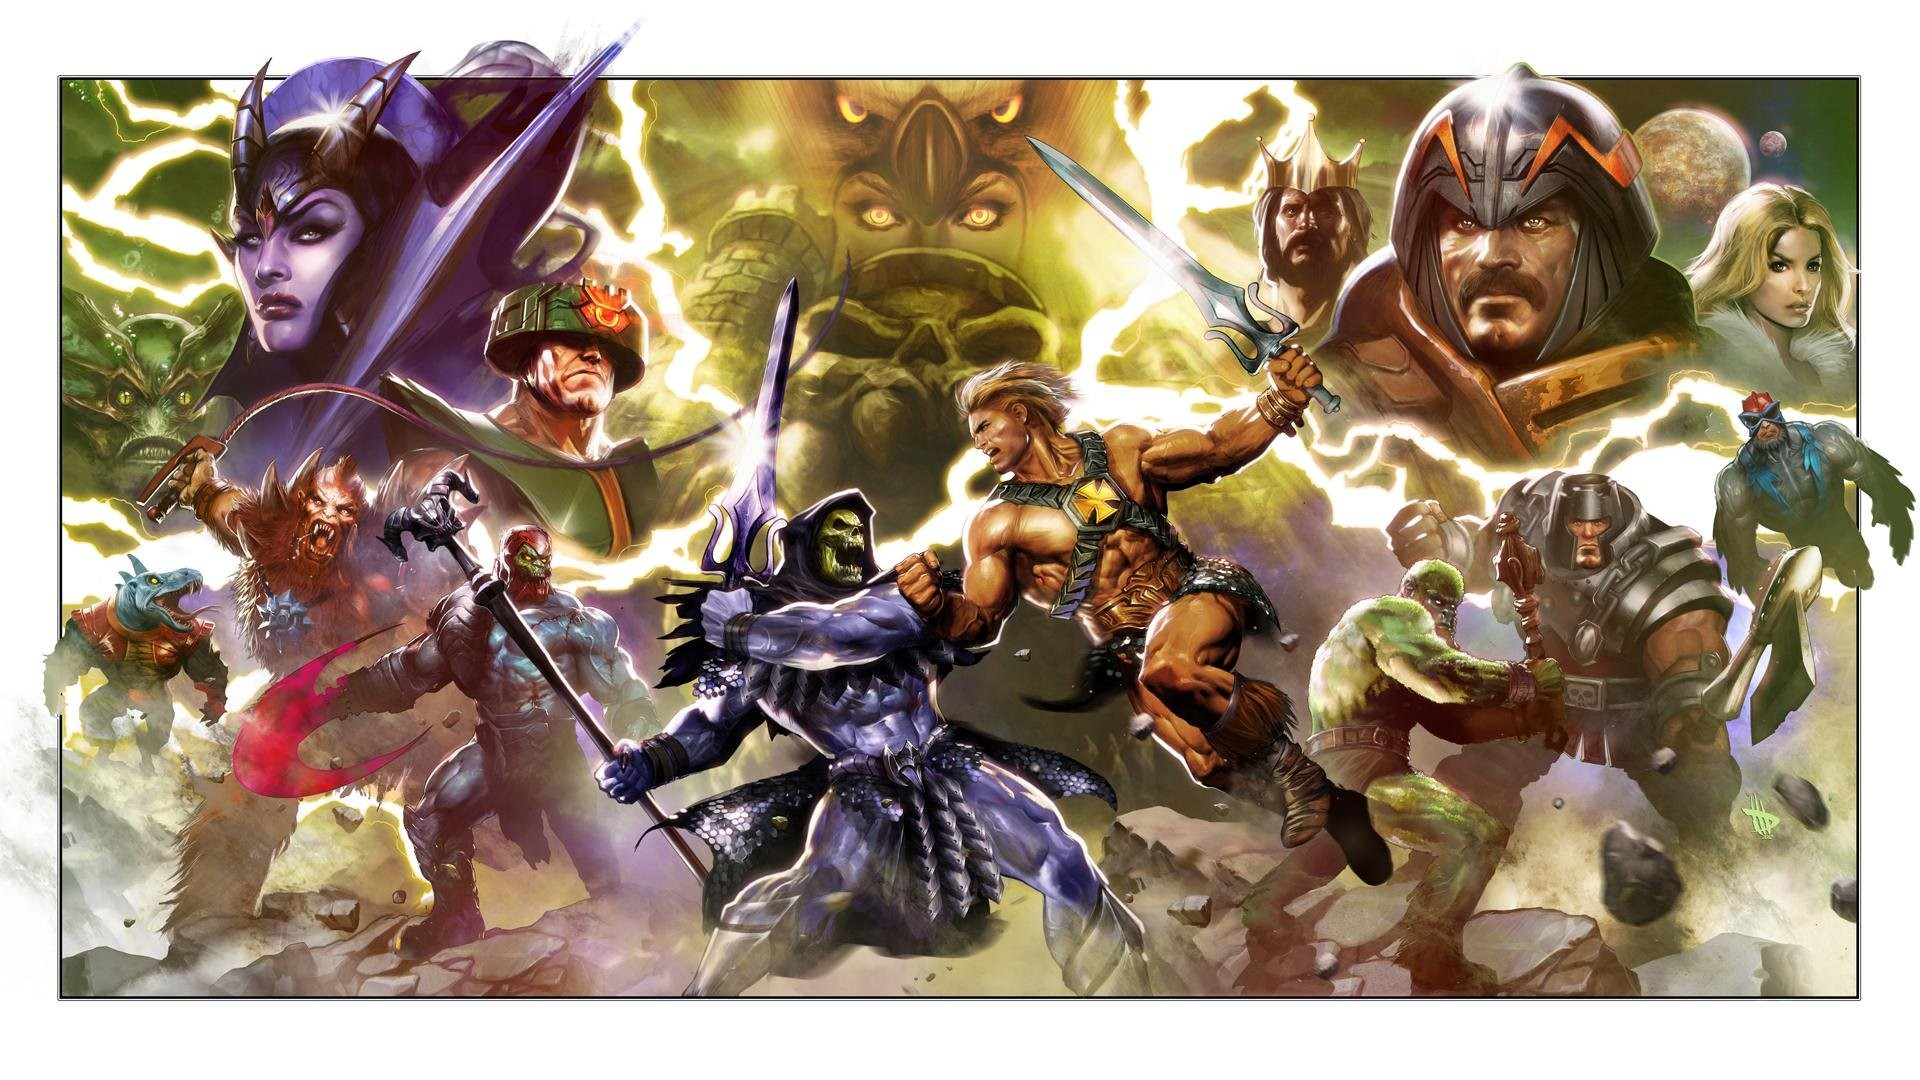 He-Man and the Masters of the Universe wallpaper     284876    WallpaperUP